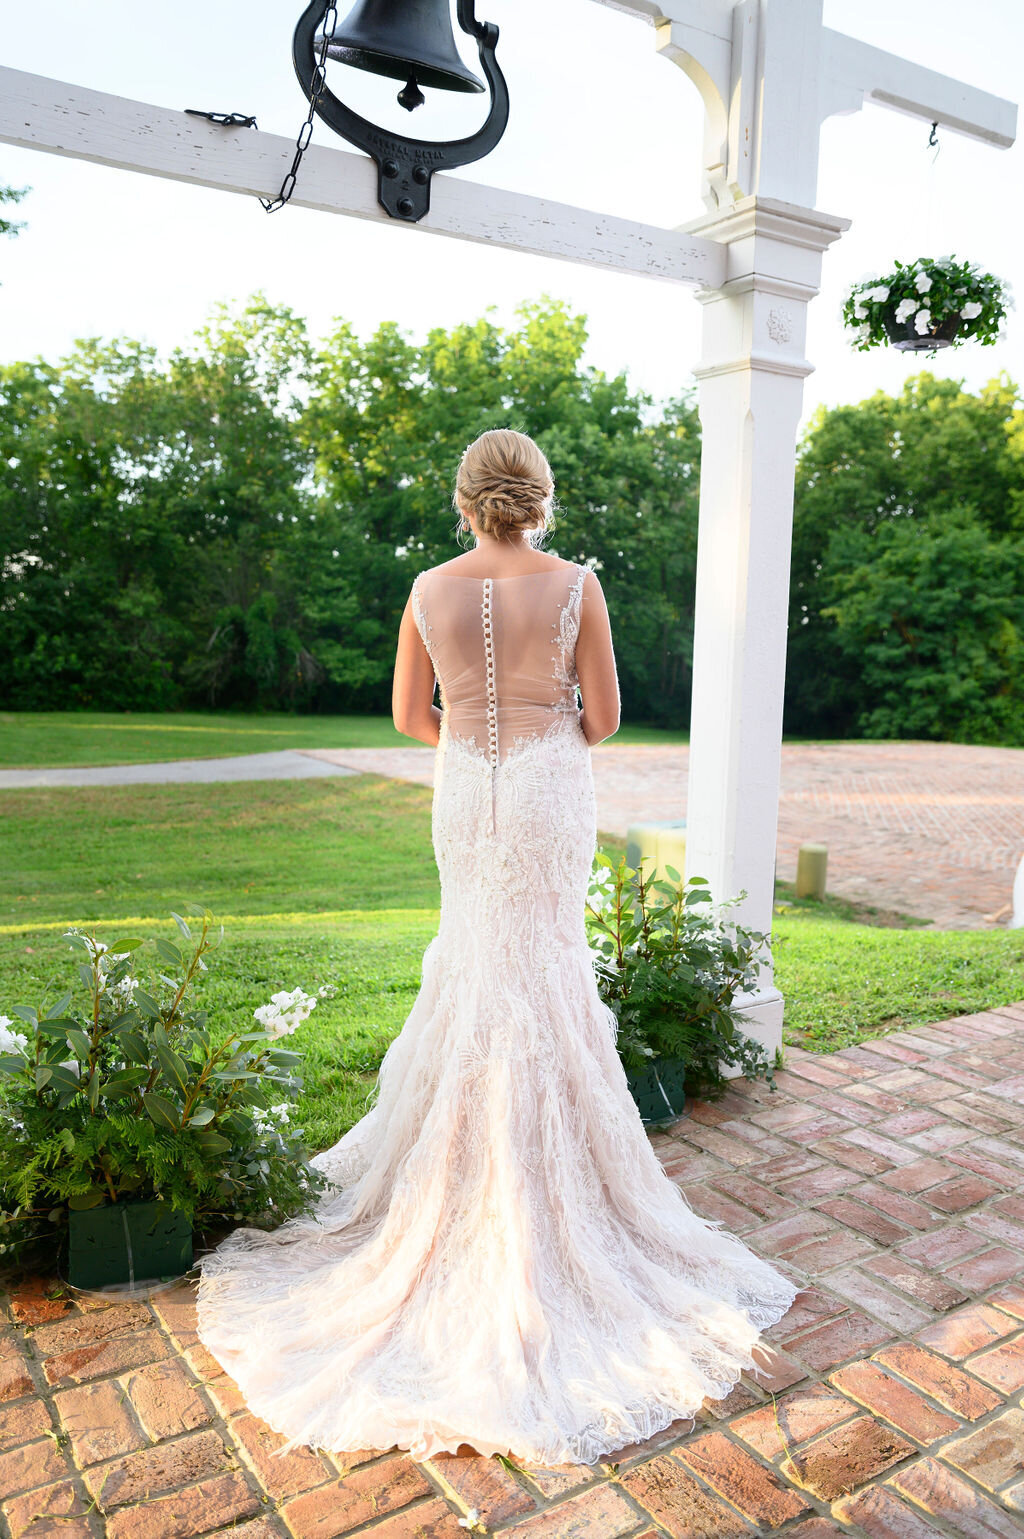 Lynwood Estate - Luxury Richmond Kentucky Wedding Venue - Elegant Estate Wedding 00017